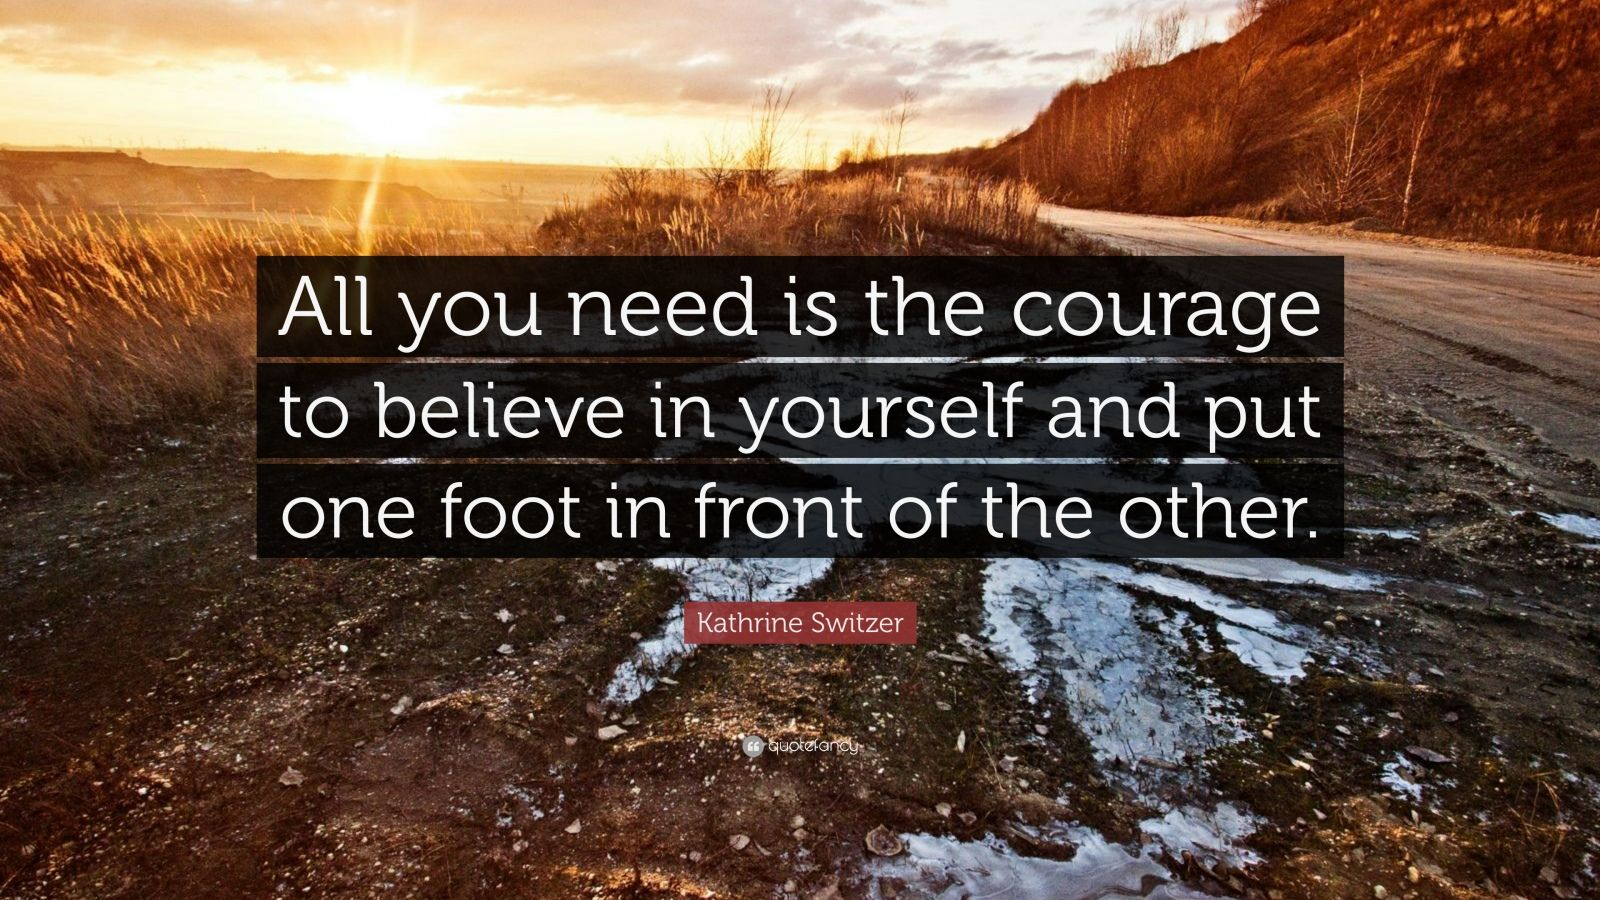 """Kathrine Switzer Quote: """"All you need is the courage to believe in yourself and put one foot in front of the other."""""""